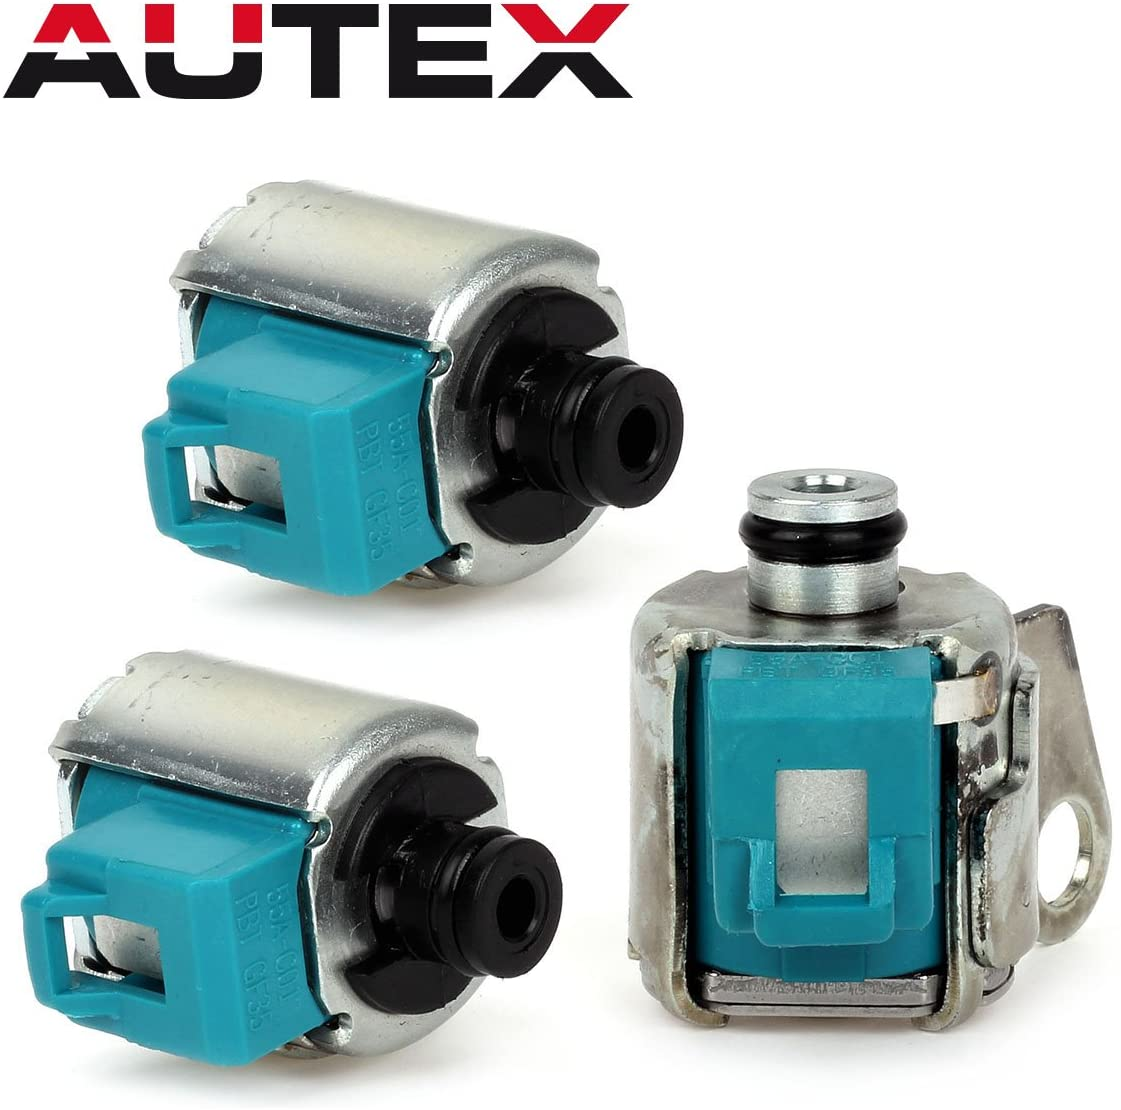 AUTEX A340E A340F AW4 Shift TCC Lock Up Solenoid Set